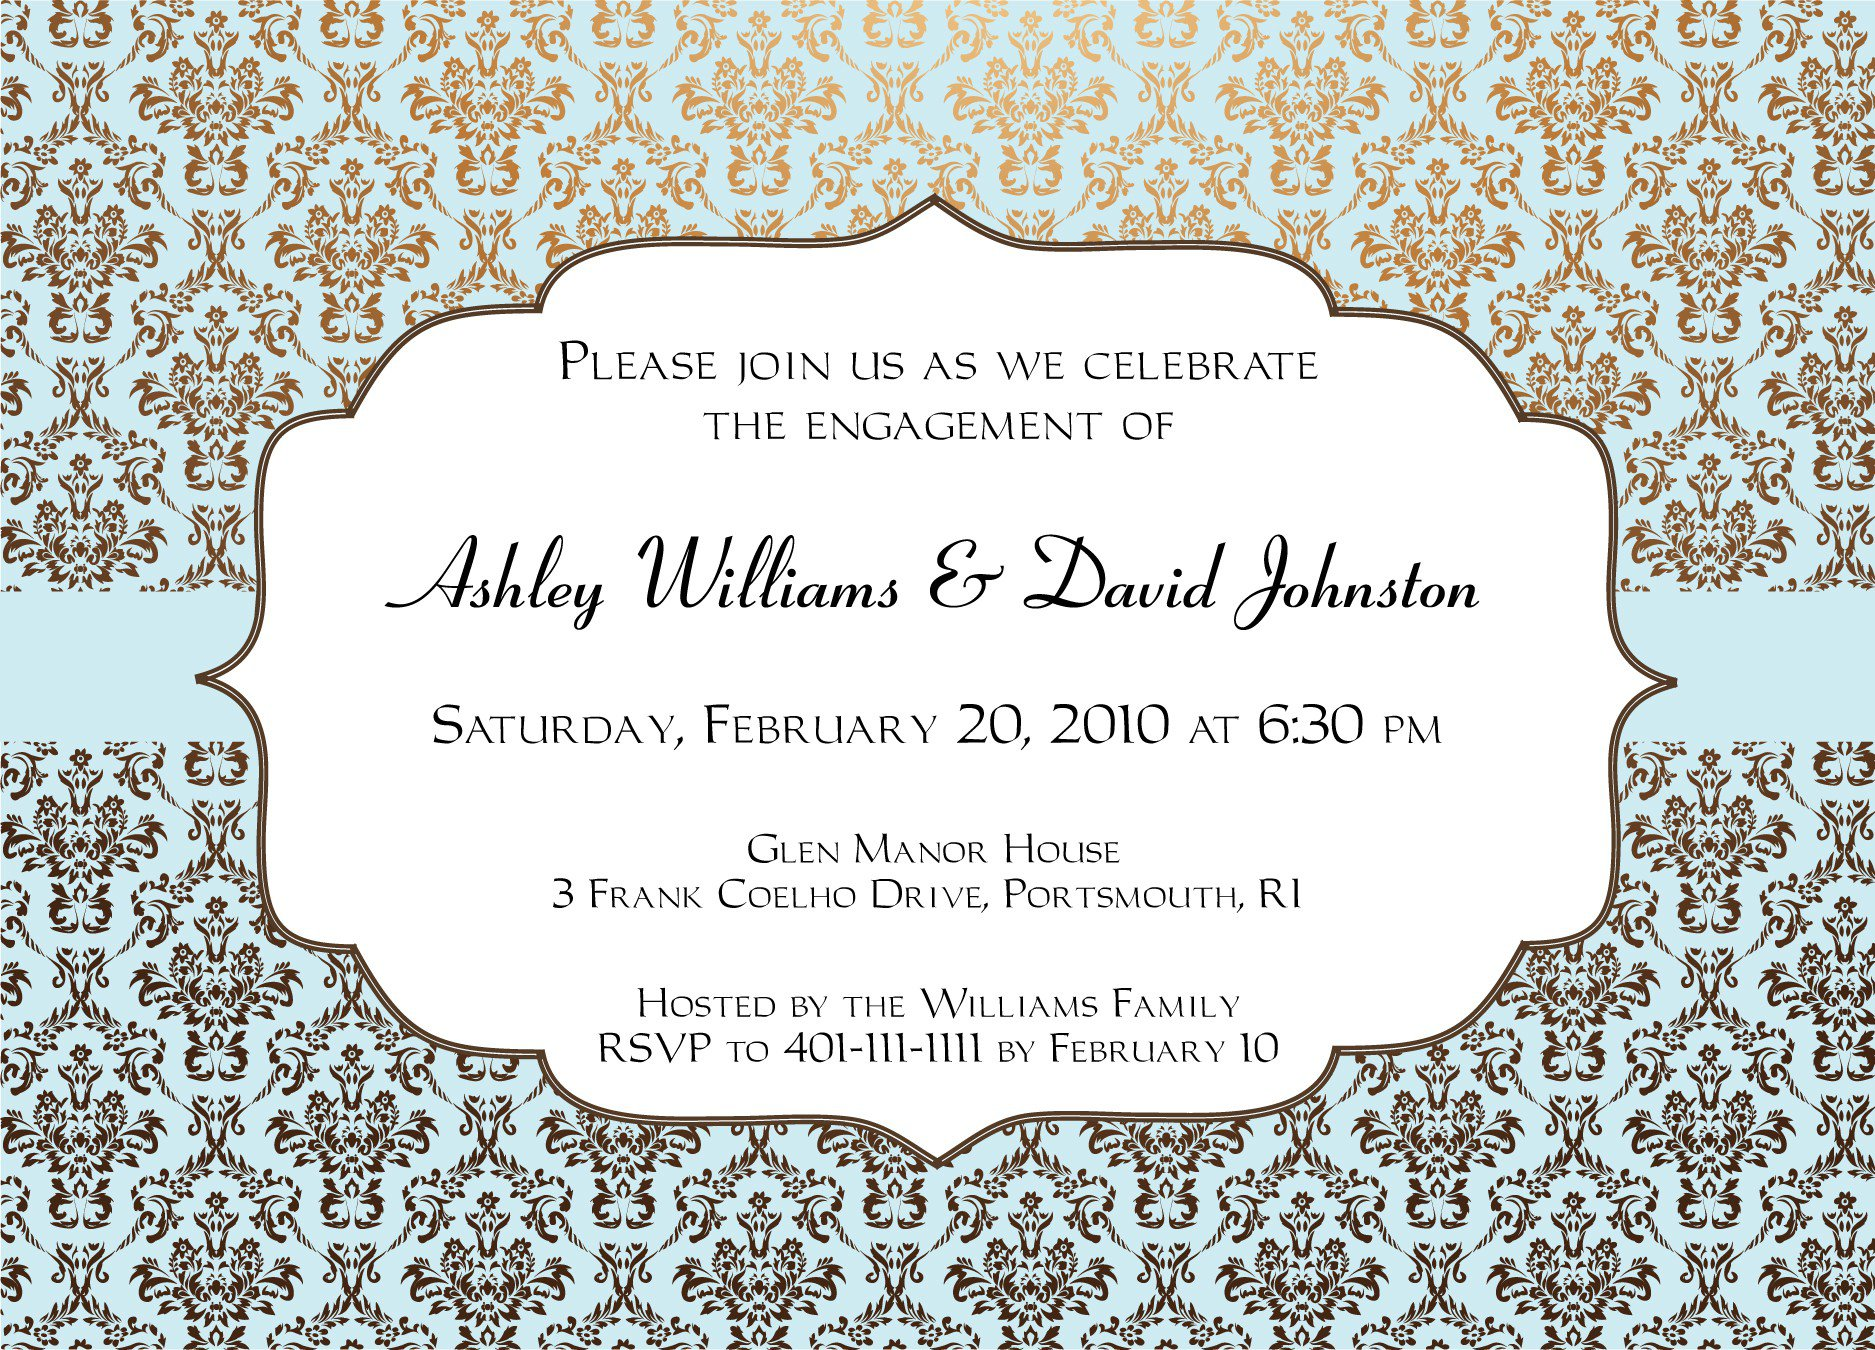 House Warming Party Invitations Free Templates – Free Housewarming Party Invitations